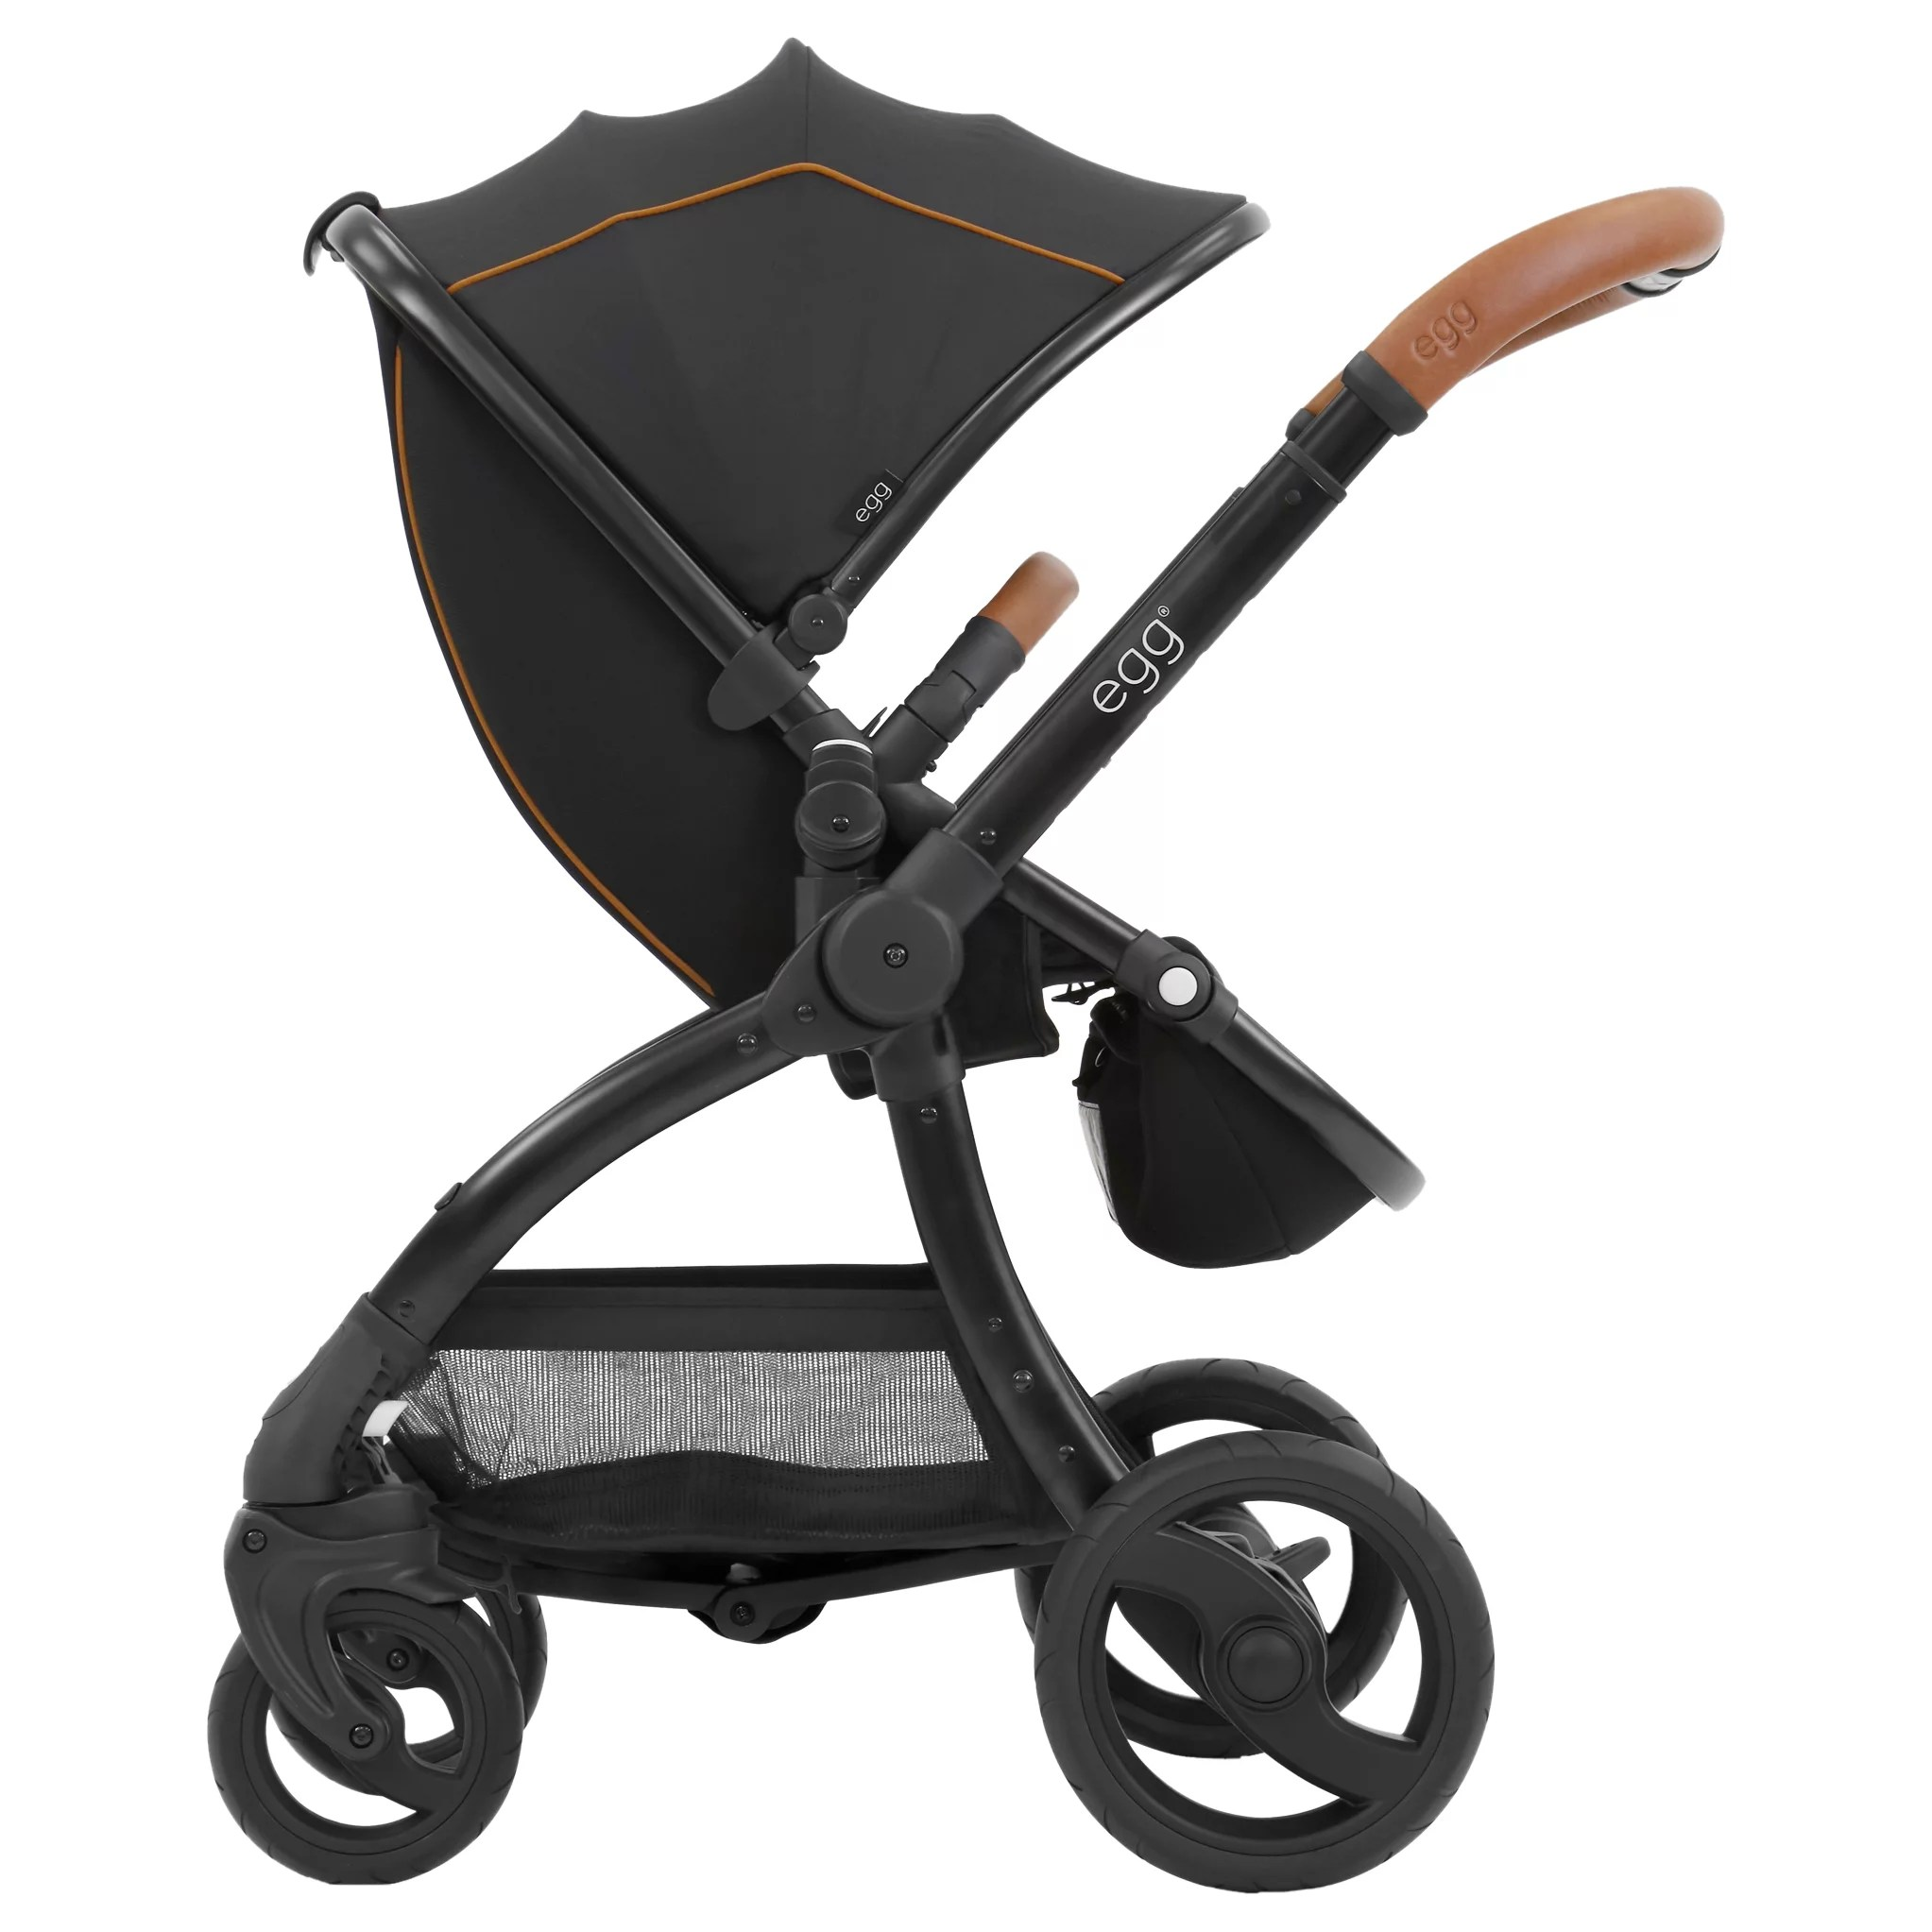 Egg Pram Parasol John Lewis Egg Stroller Base And Seat With Fleece Liner Espresso At